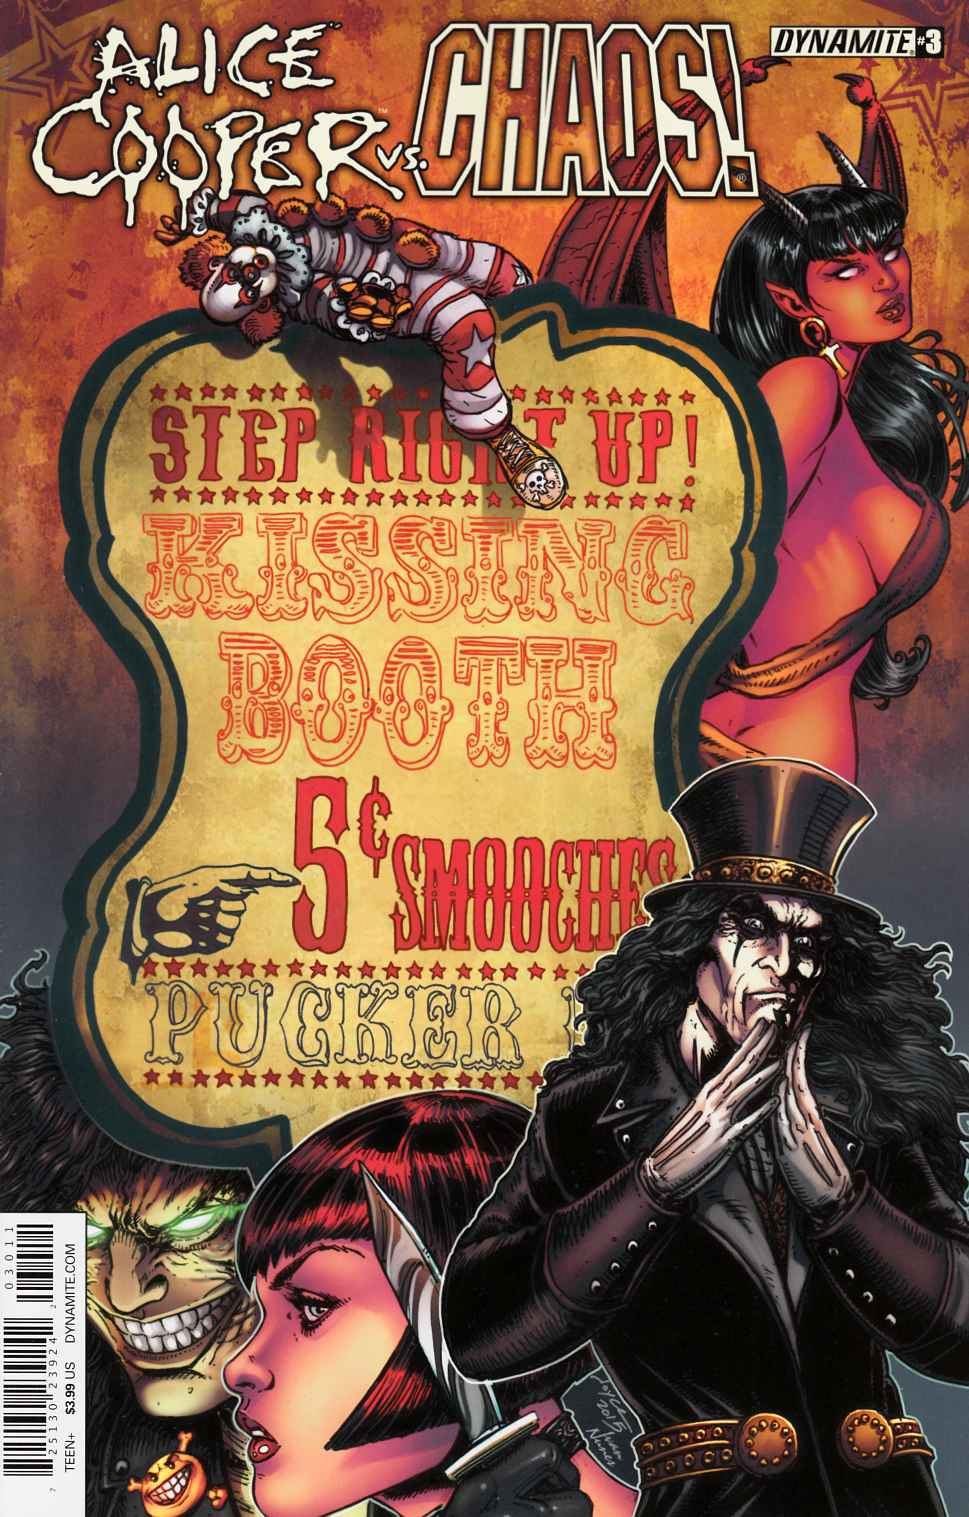 Alice Cooper Vs Chaos #3 Cover A- Chin_THUMBNAIL